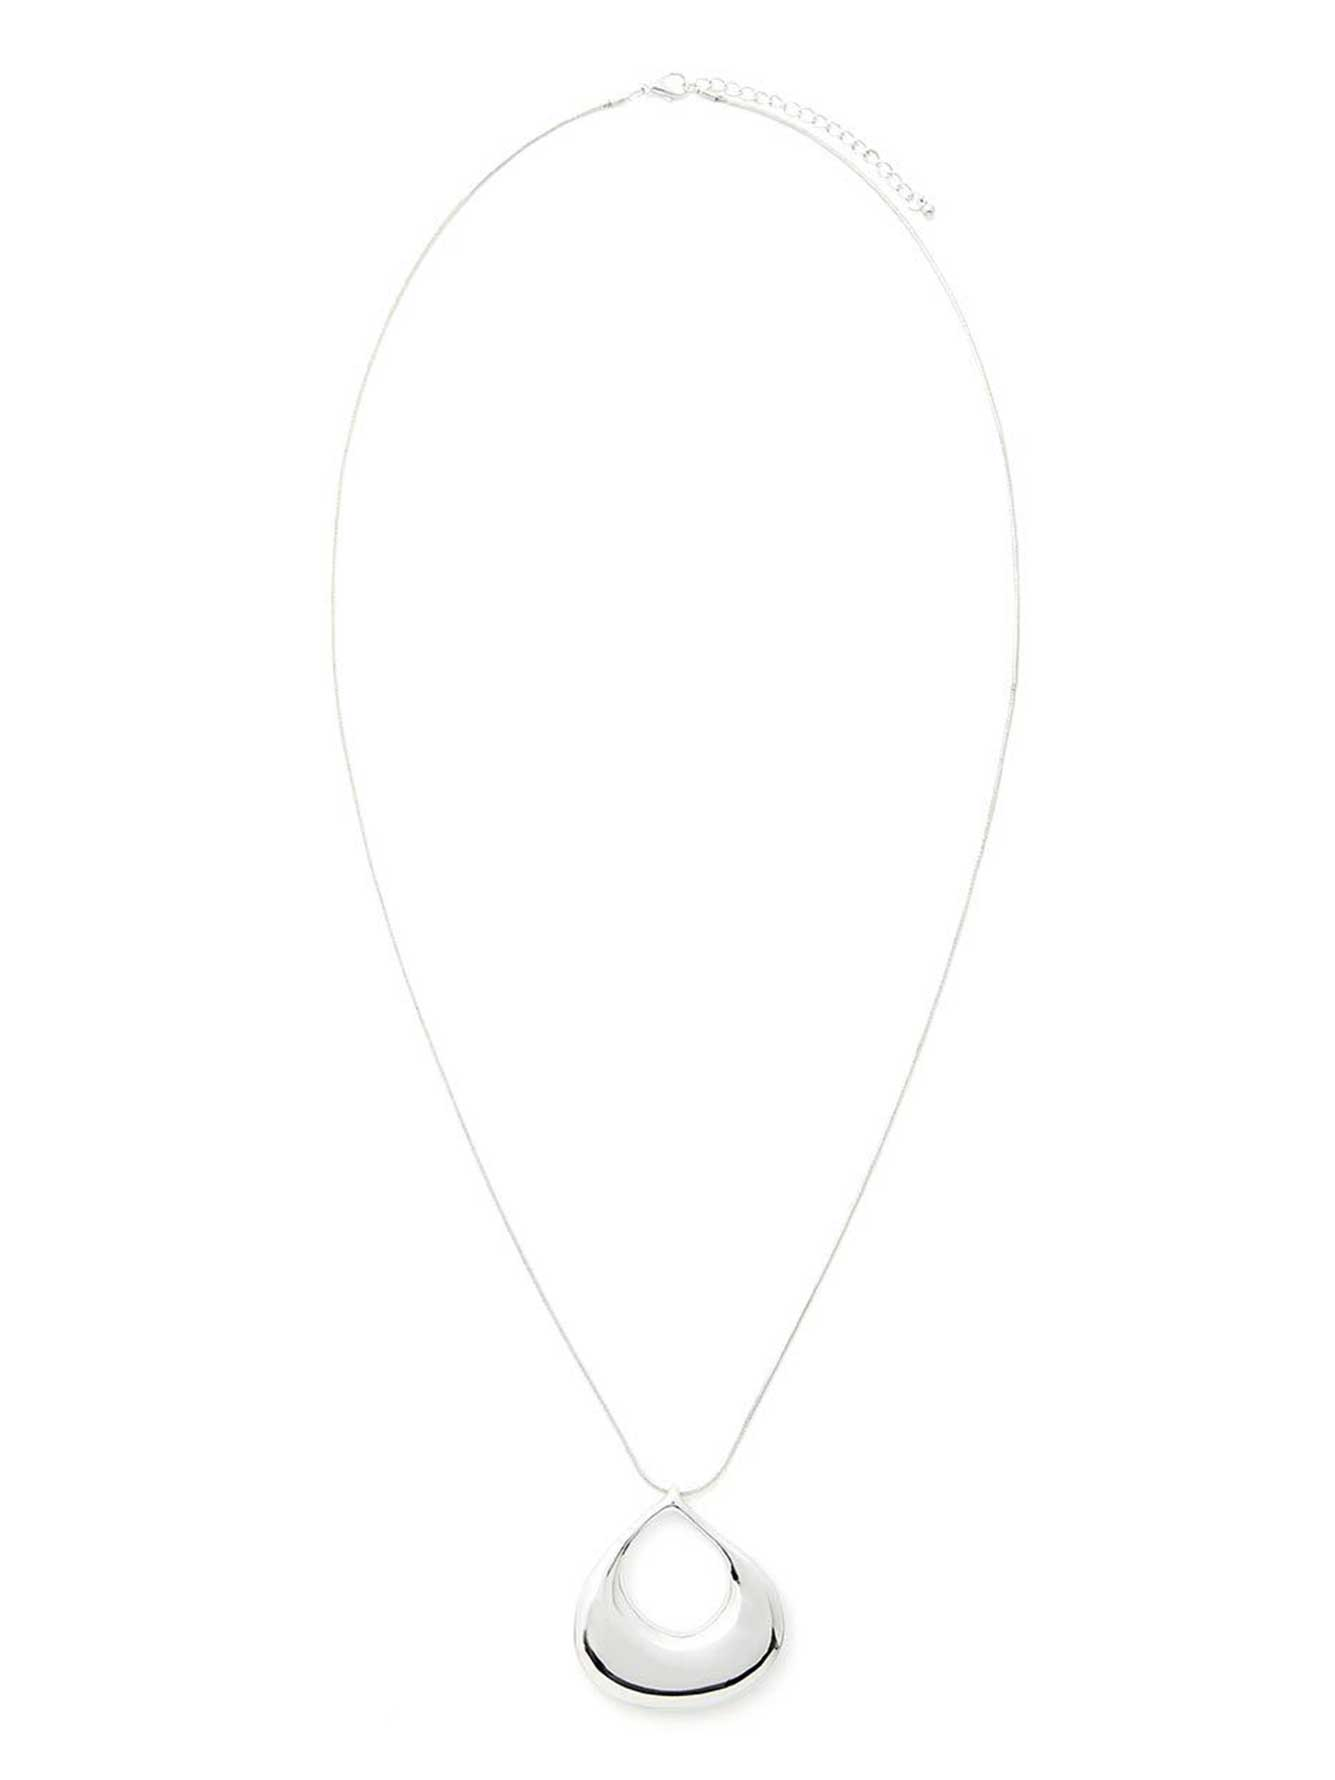 crystal necklaces voyage view os product size convertible long alternate necklace teardrop